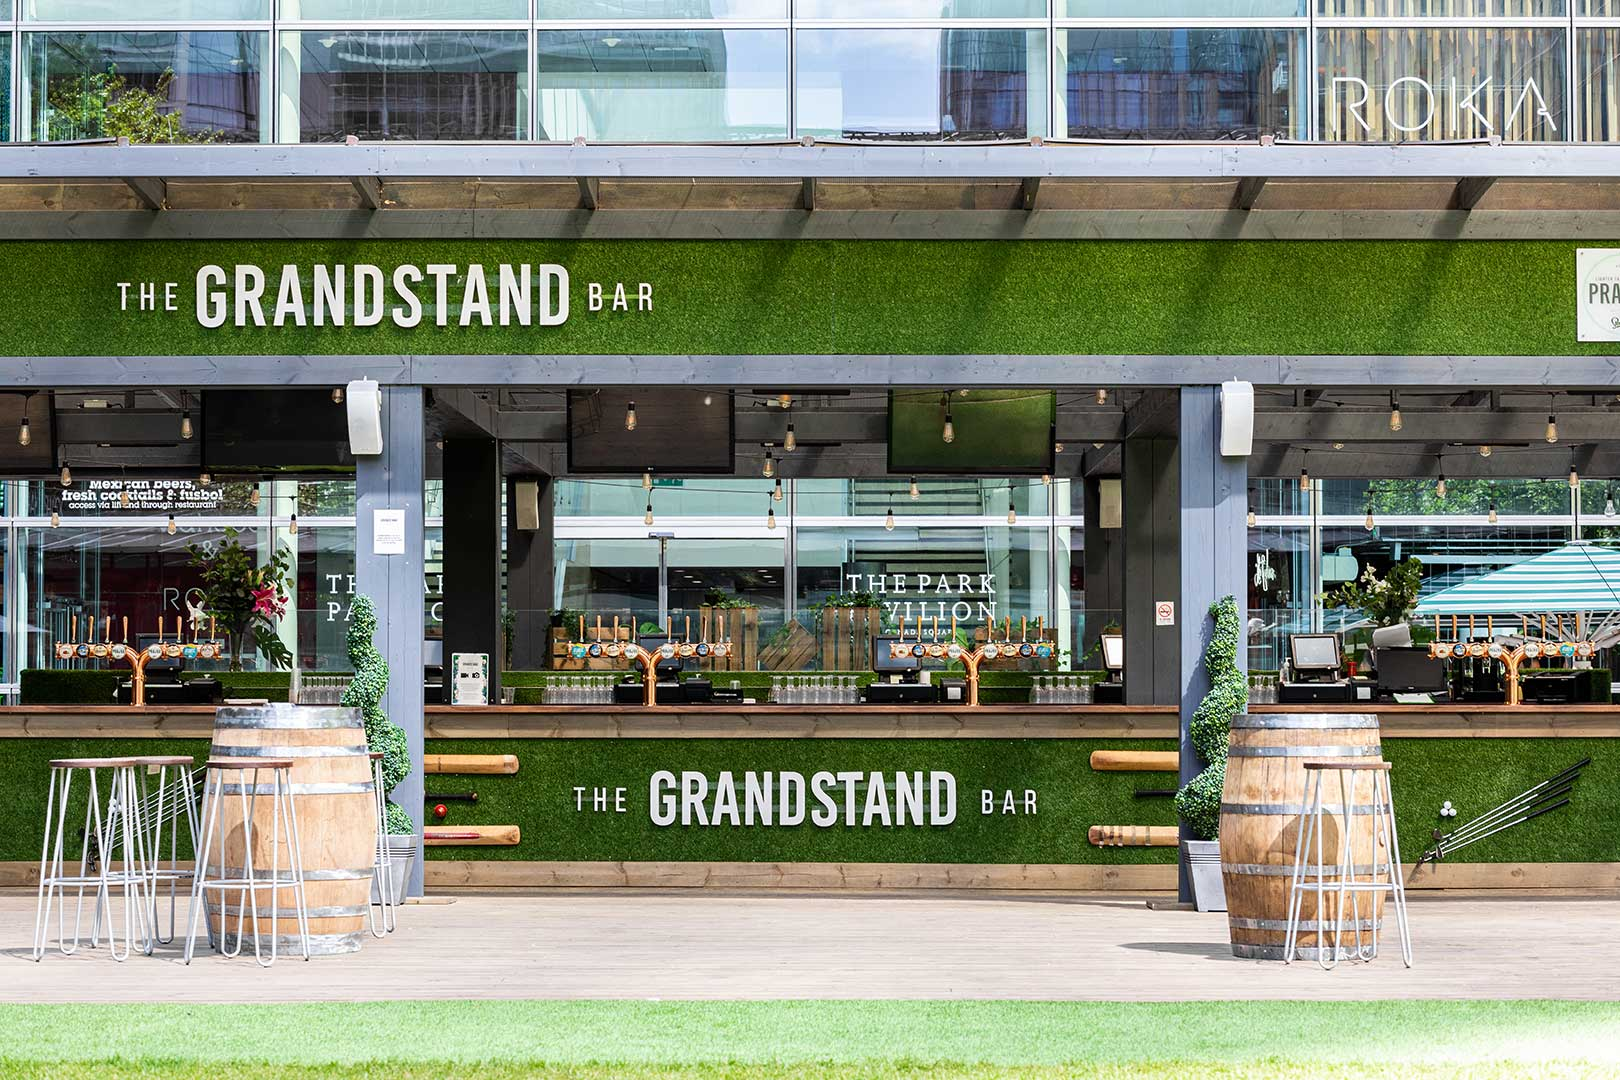 The Grandstand Bar